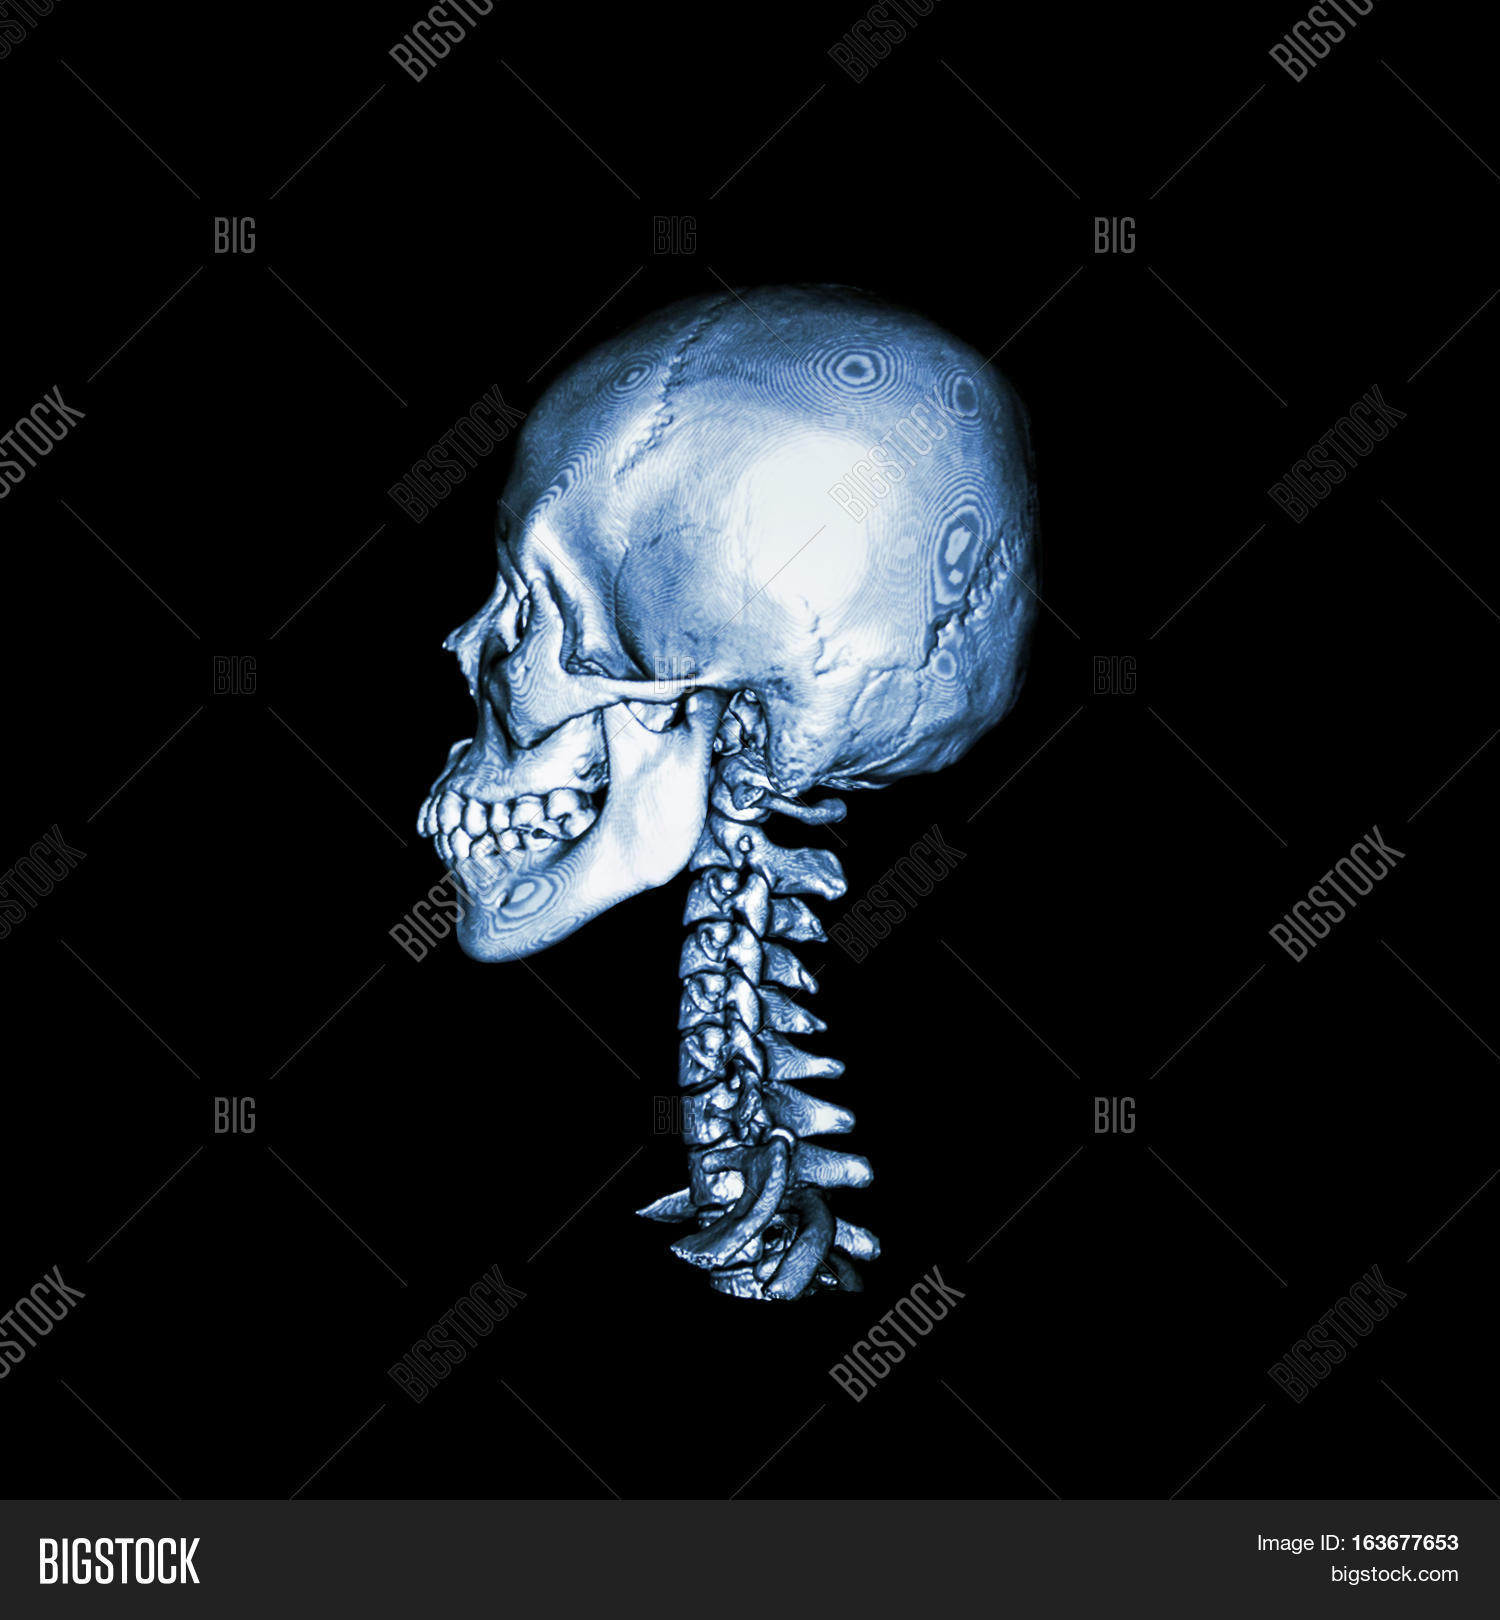 Ct Scan 3d Image Image Photo Free Trial Bigstock